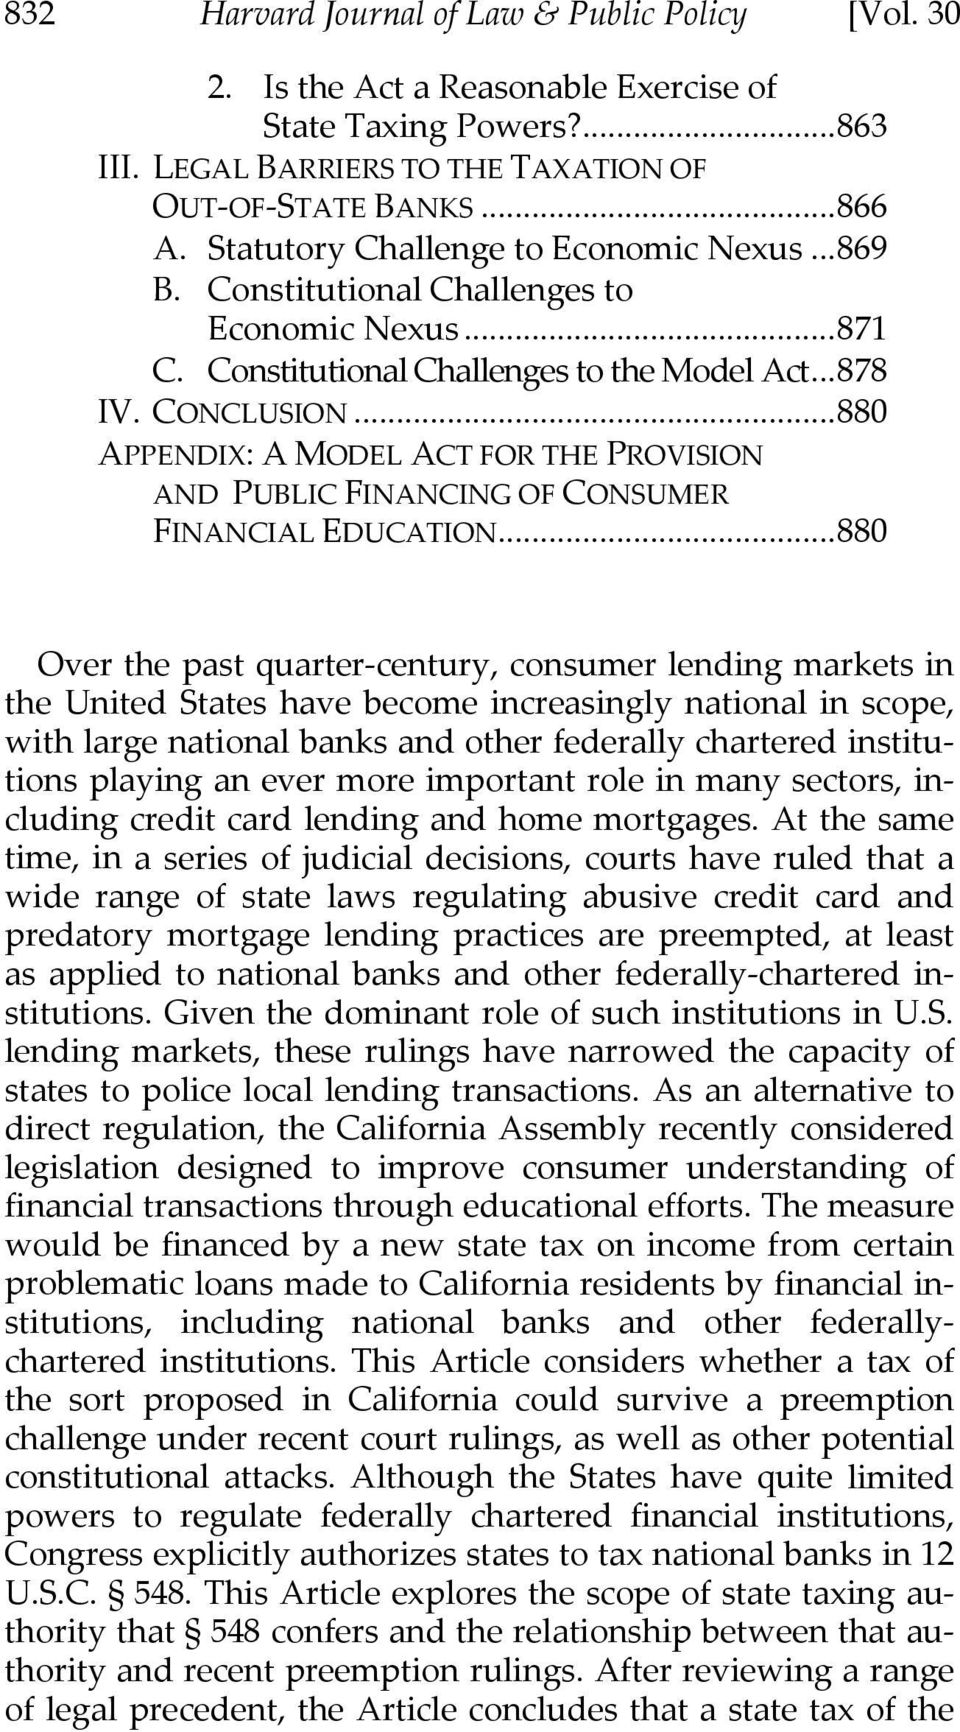 ..880 APPENDIX: A MODEL ACT FOR THE PROVISION AND PUBLIC FINANCING OF CONSUMER FINANCIAL EDUCATION.